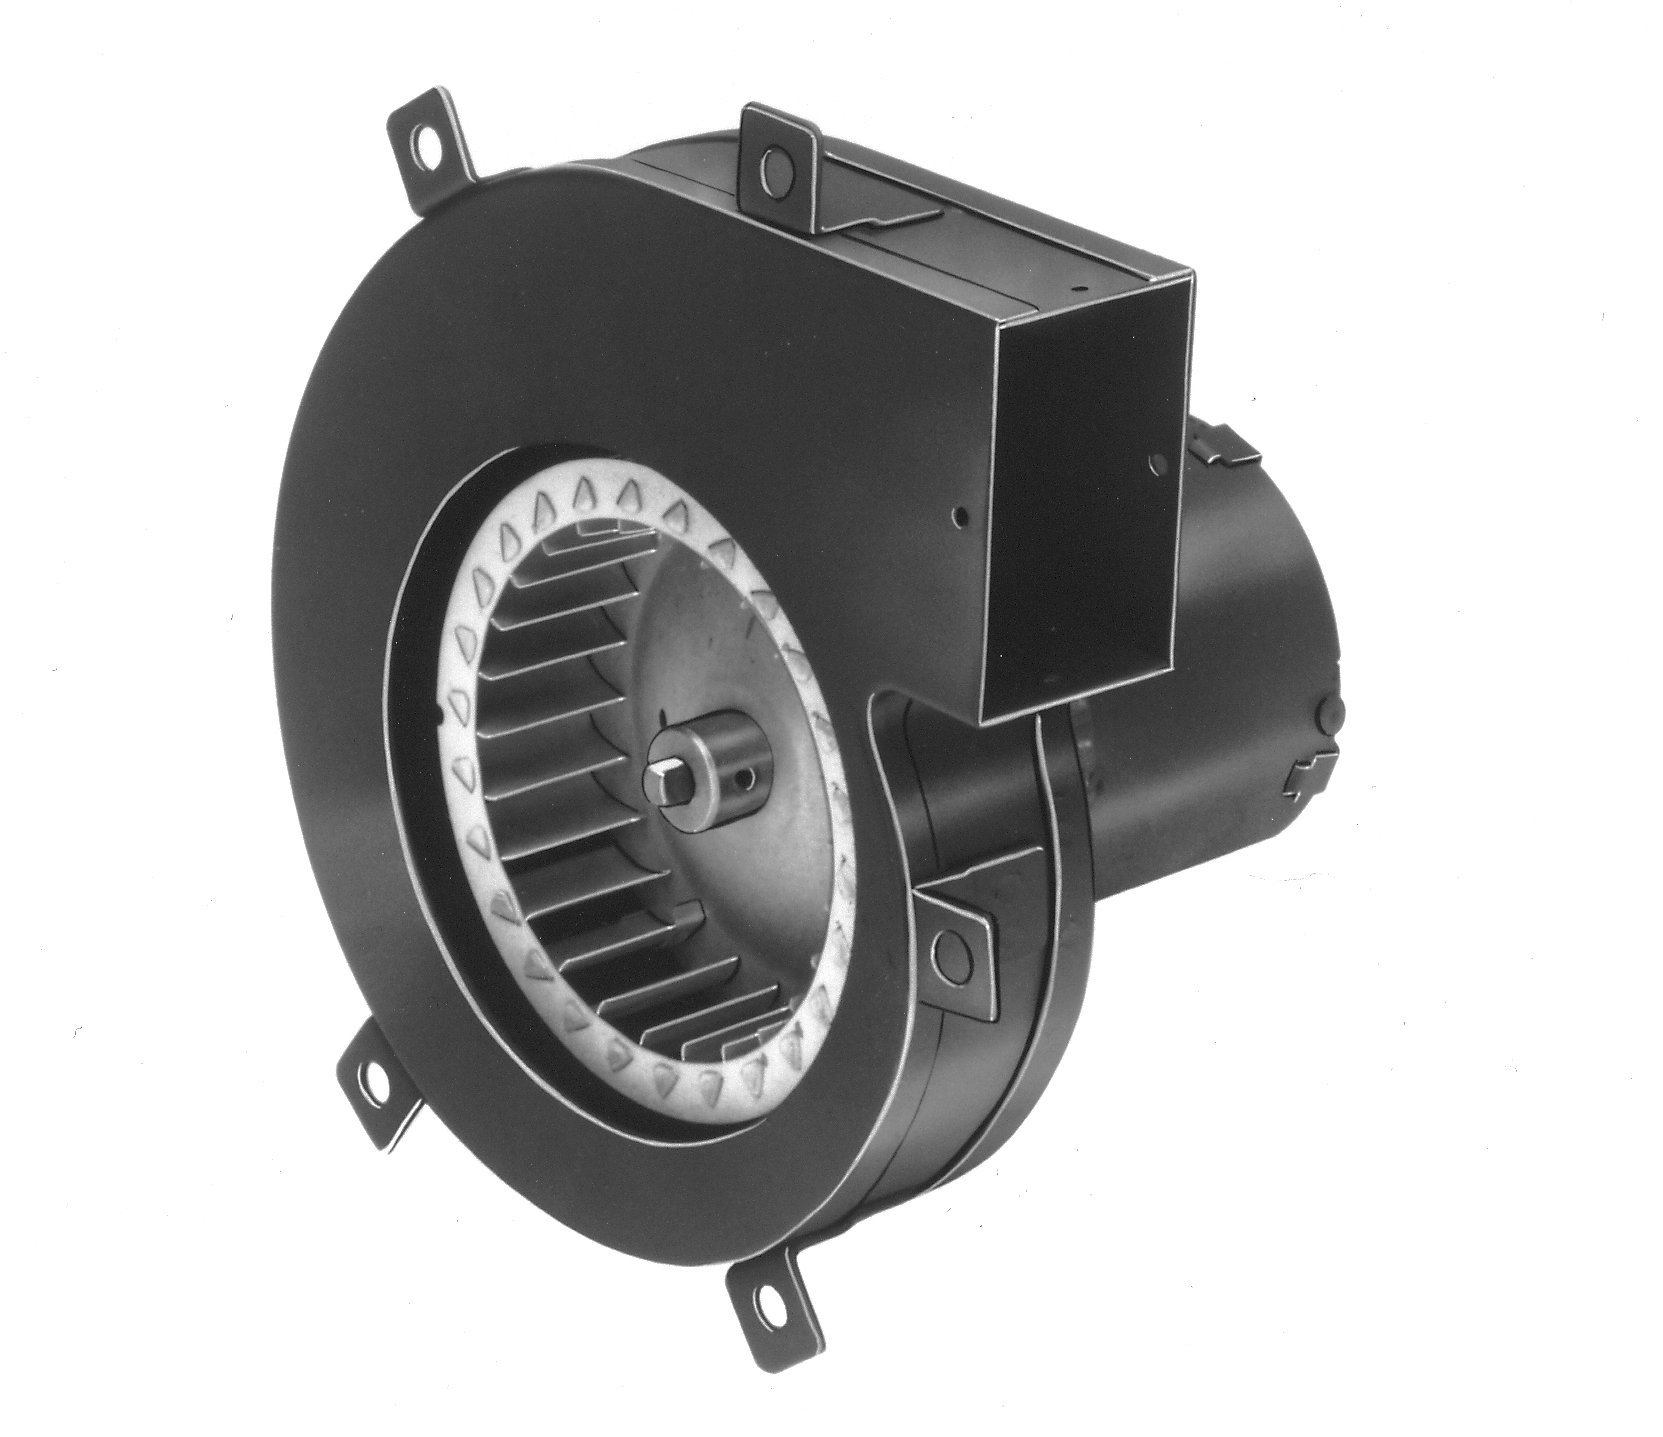 Fasco A064 3.3'' Frame Shaded Pole OEM Replacement Specific Purpose Blower with Sleeve Bearing, 1/55HP, 3,150 rpm, 115V, 60 Hz, 0.7 amps